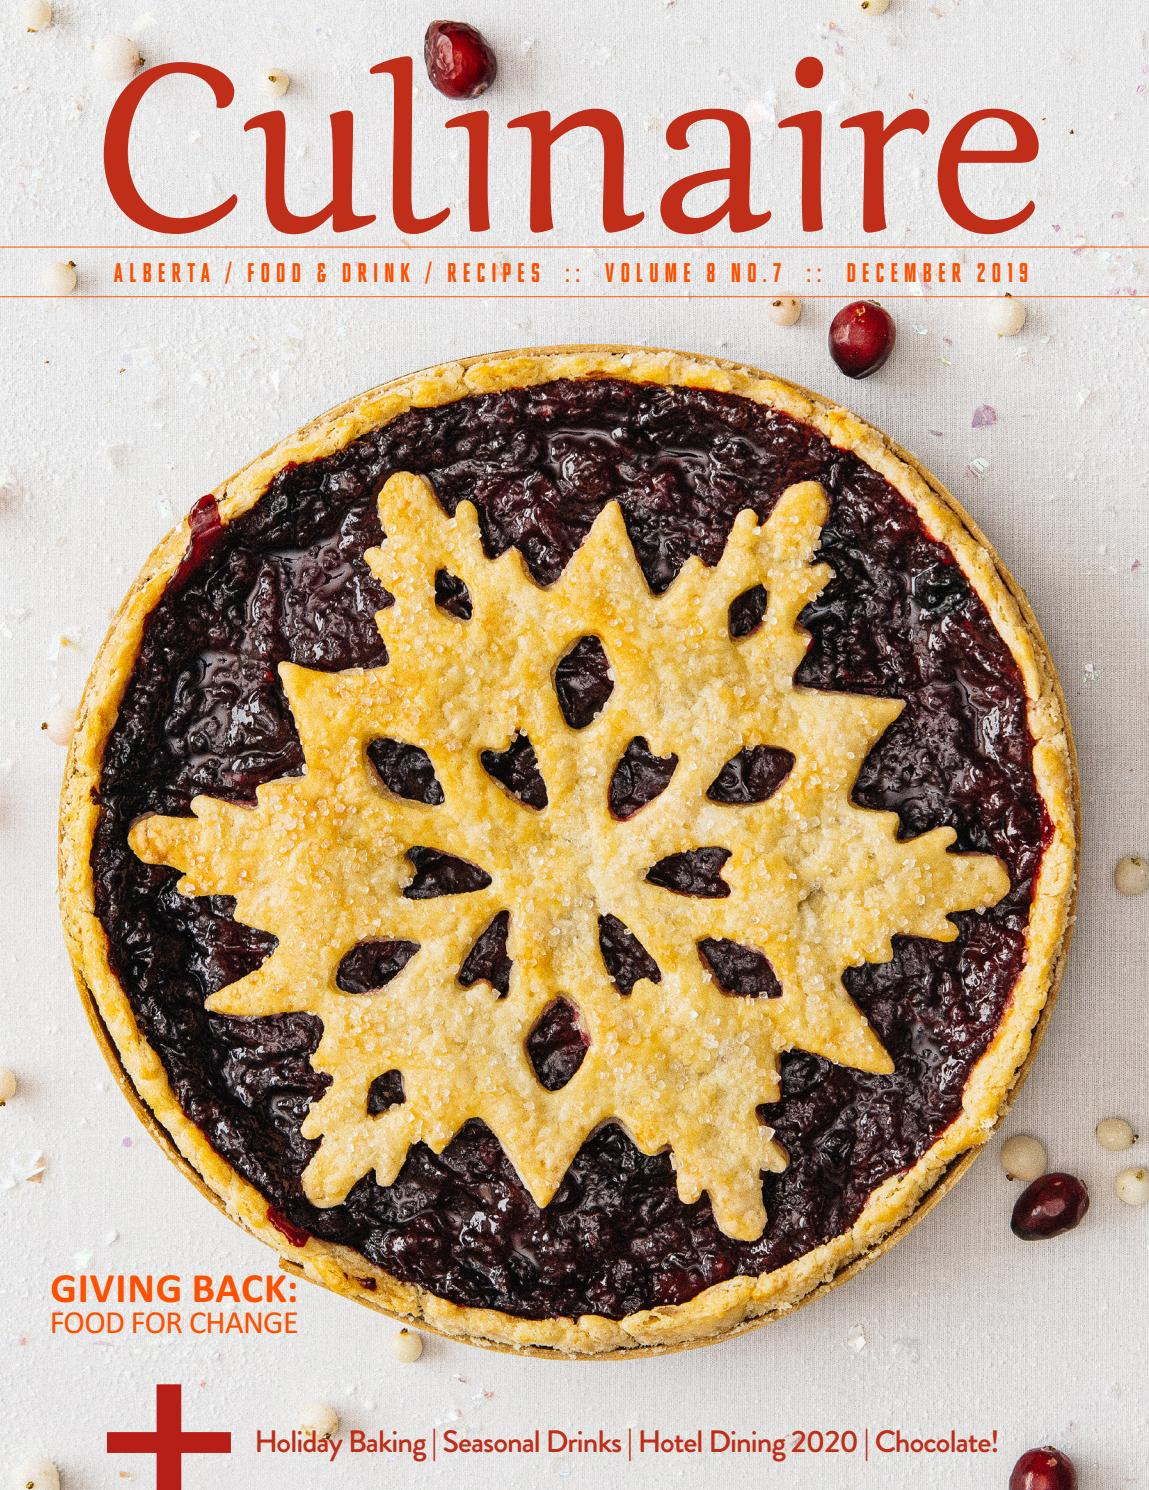 Culinaire 8 8 December 2019 Pdf By Culinaire Magazine Issuu